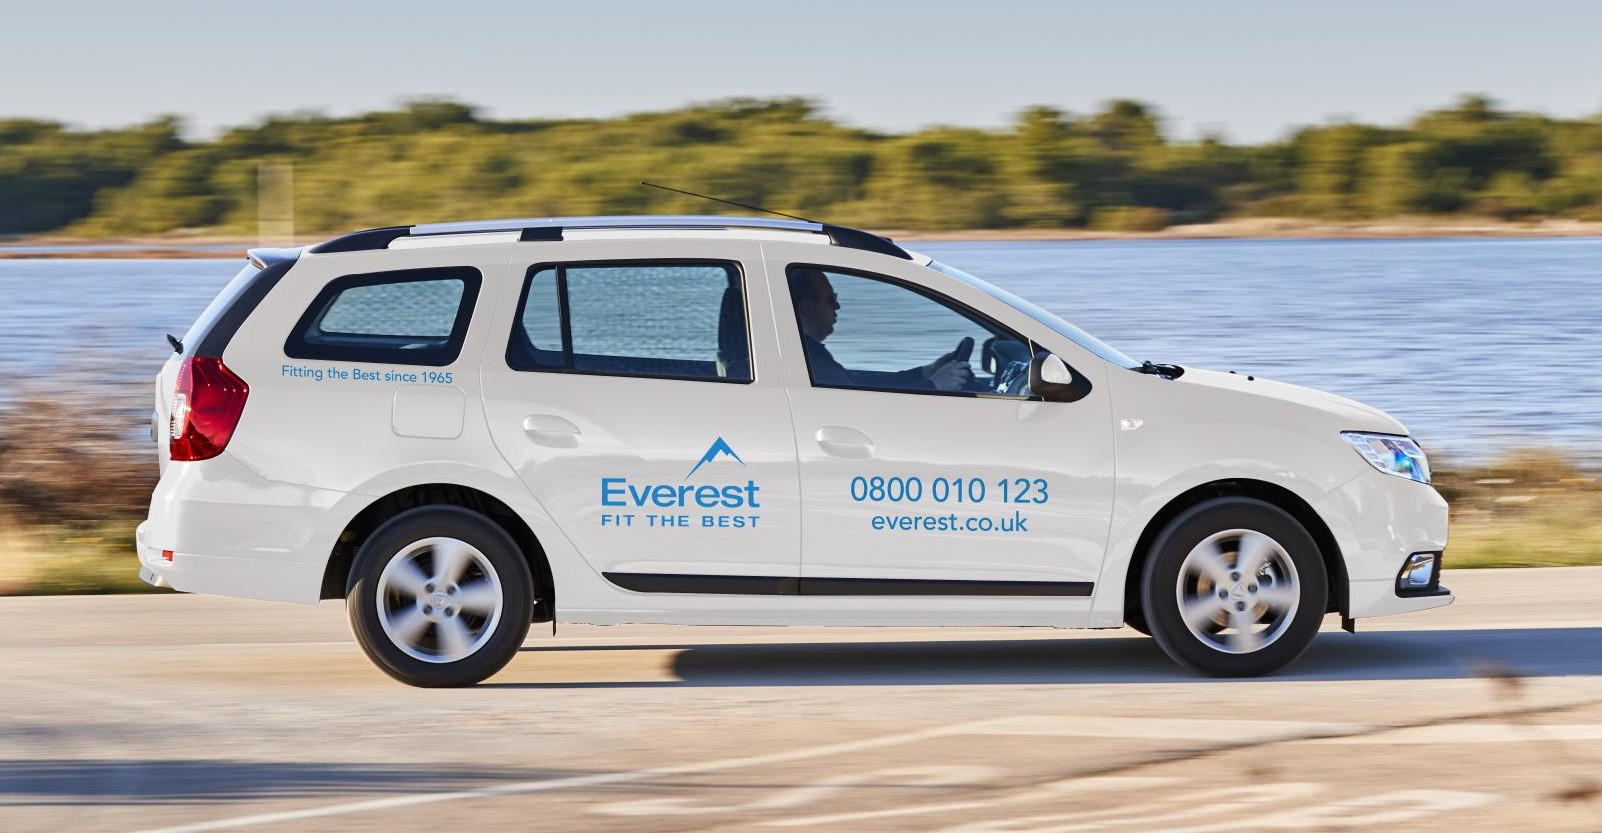 New dacia logan mcv provides a perfect fit for everest dacia new logan mcv in everest livery publicscrutiny Image collections